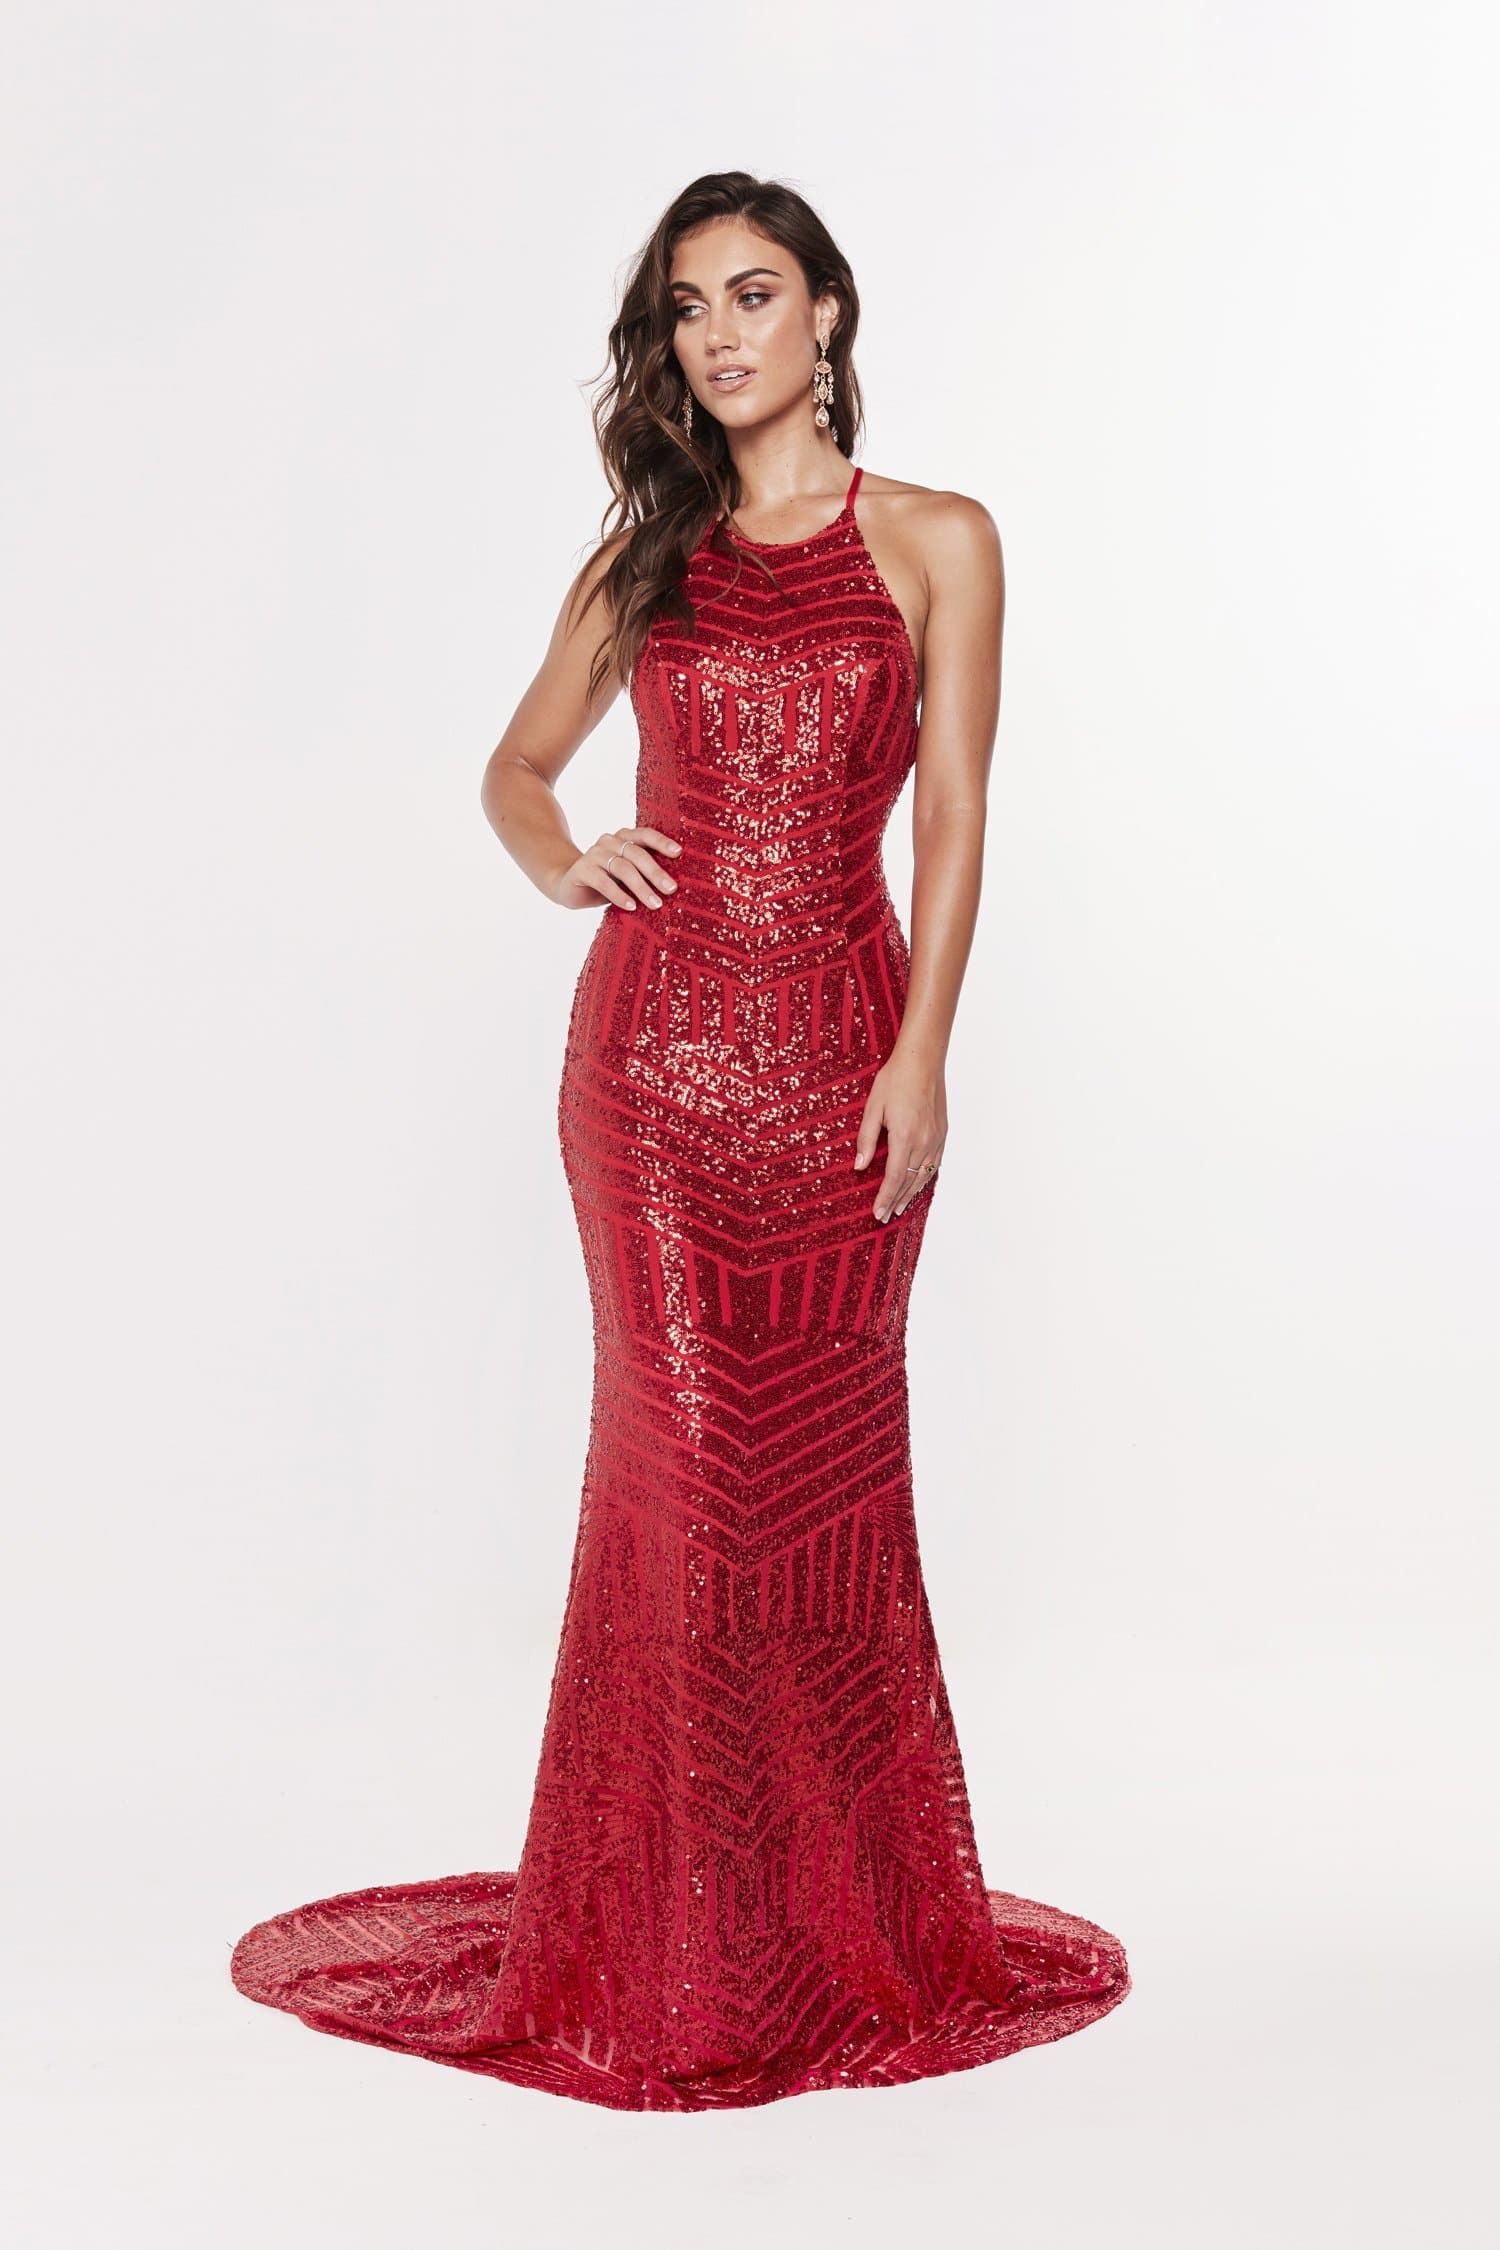 20702801bde A N Aniya- Lace Up Red Sequin Gown with a Mermaid Train – A N Luxe Label